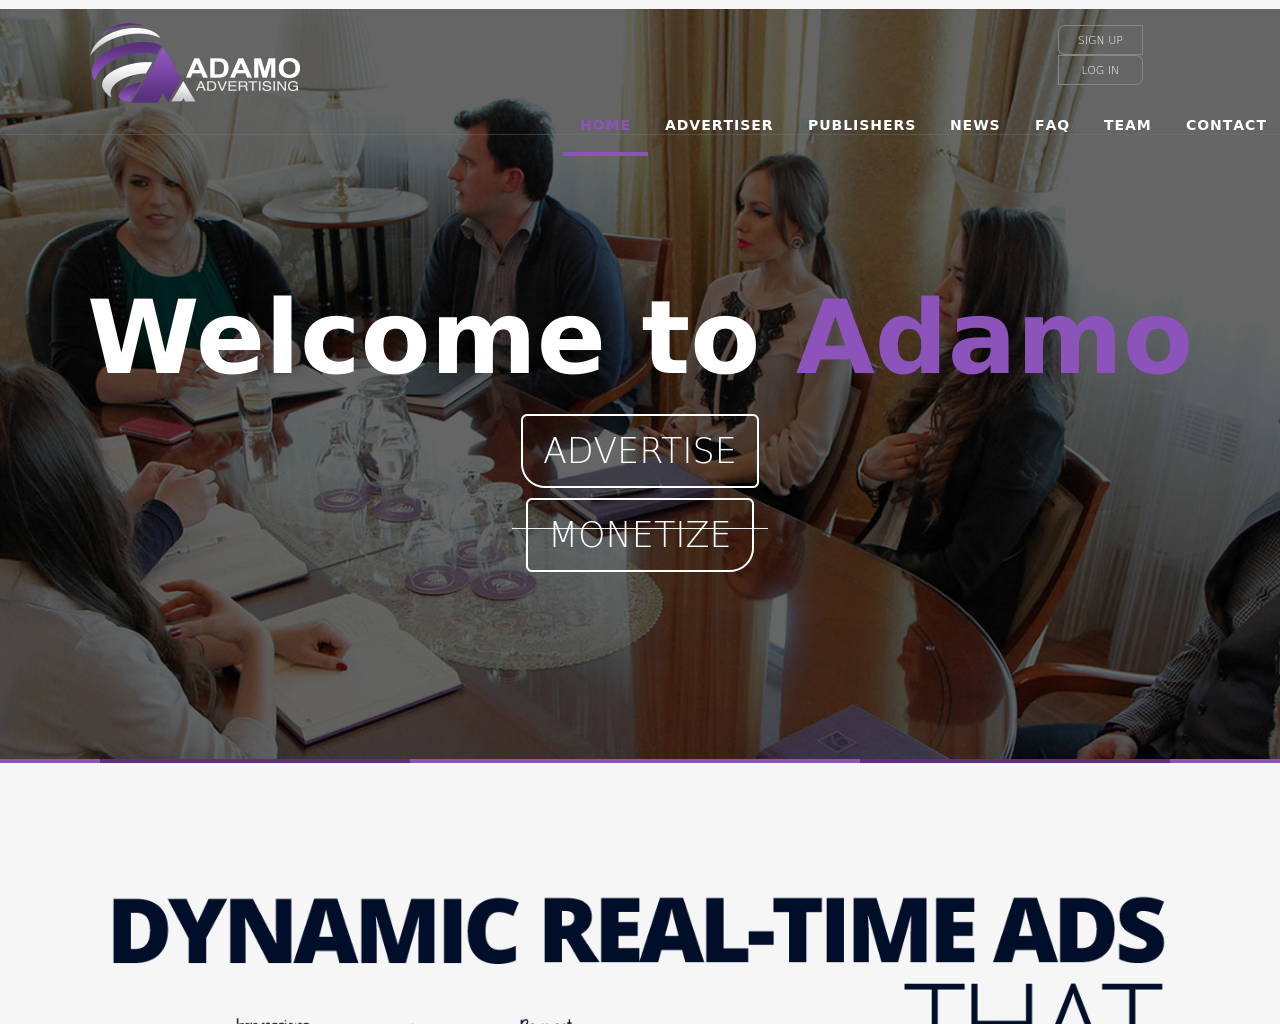 Adamo-Advertising-Advertising-Reviews-Pricing